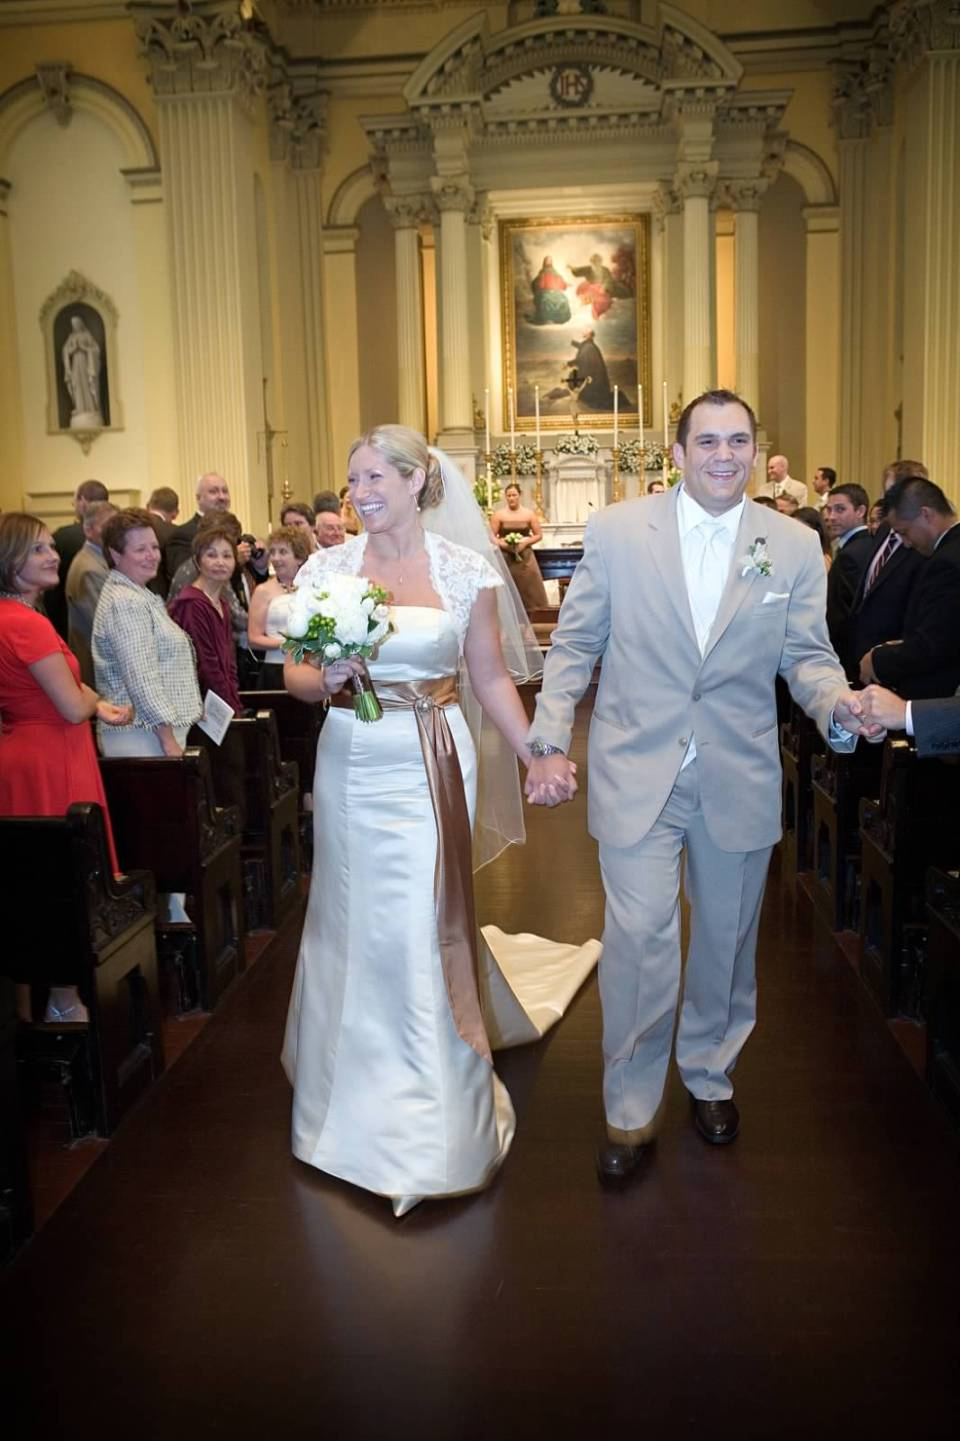 St. Ignatius Church Baltimore Wedding Ceremony